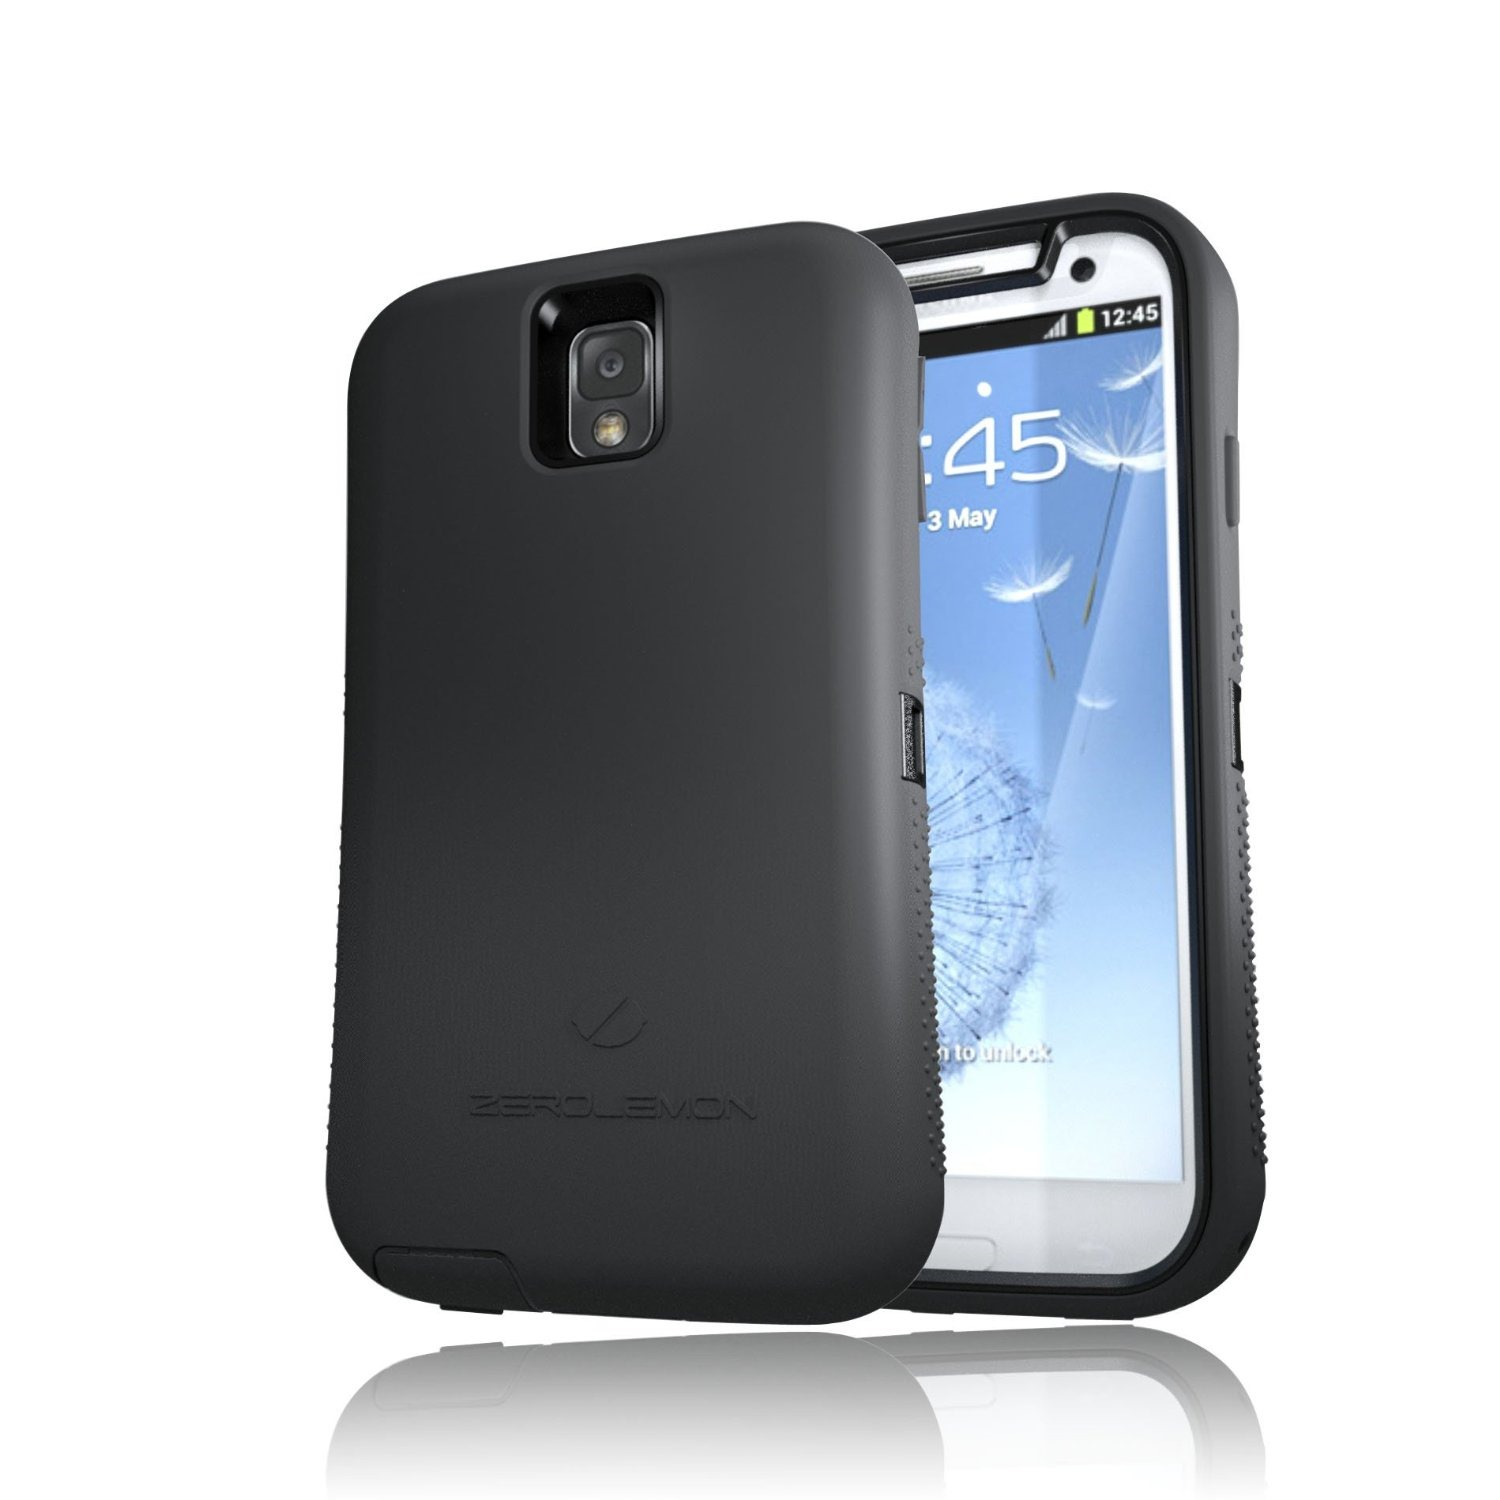 ZeroLemon's Rugged Galaxy Note 3 Case With 10,000mAh Battery And NFC Is Finally Available For $59.99